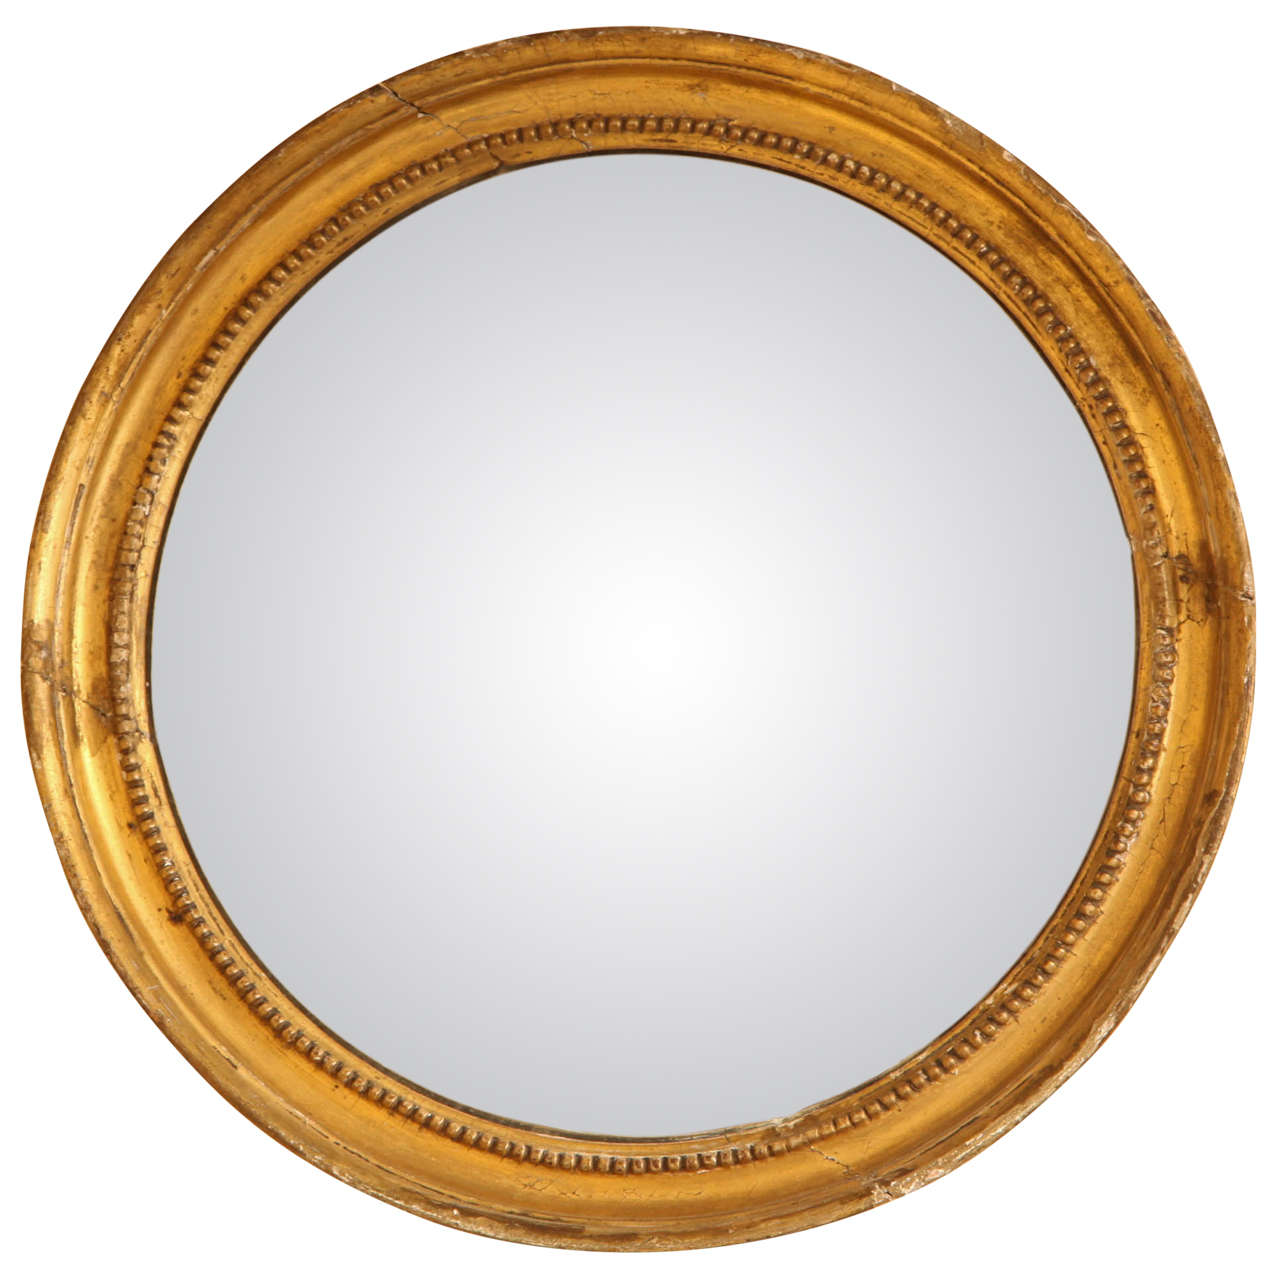 Late 19th Century English Convex Mirror